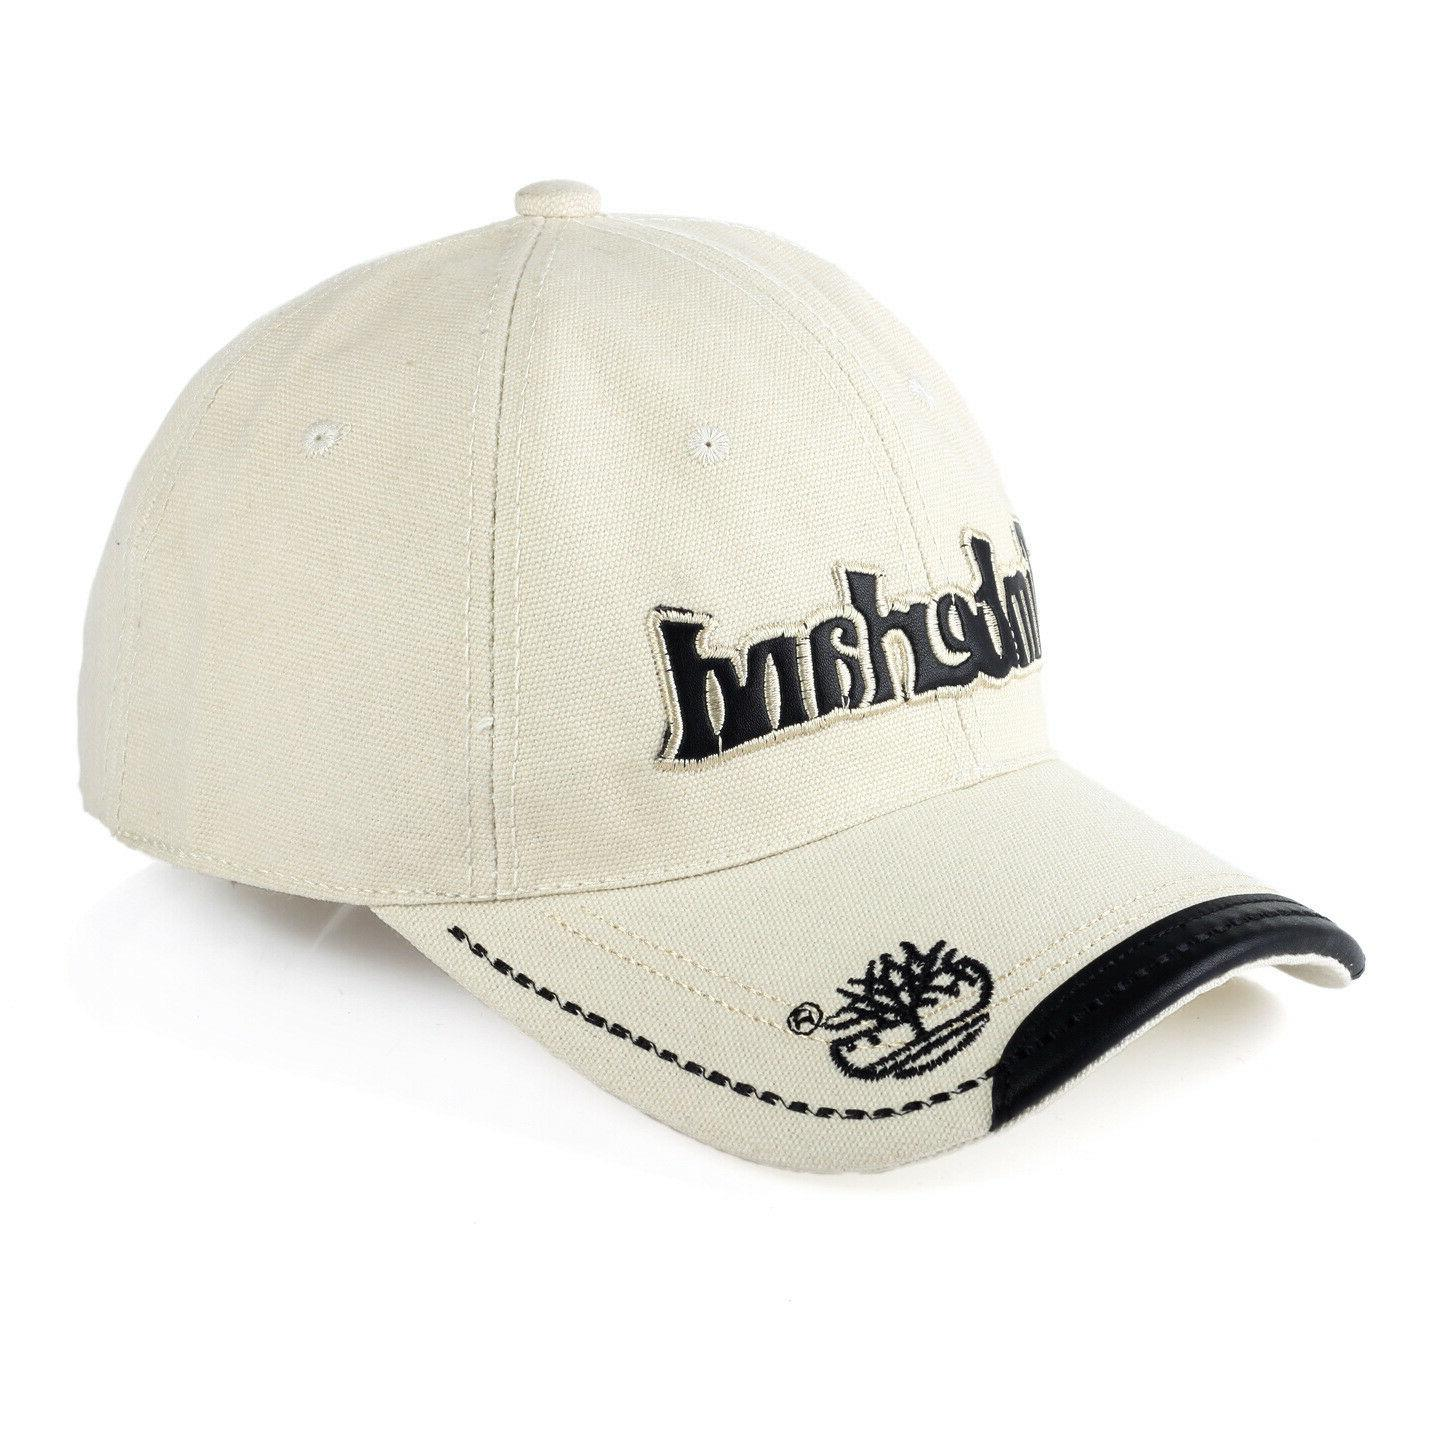 Mens Womens Word Hat Golf Sport